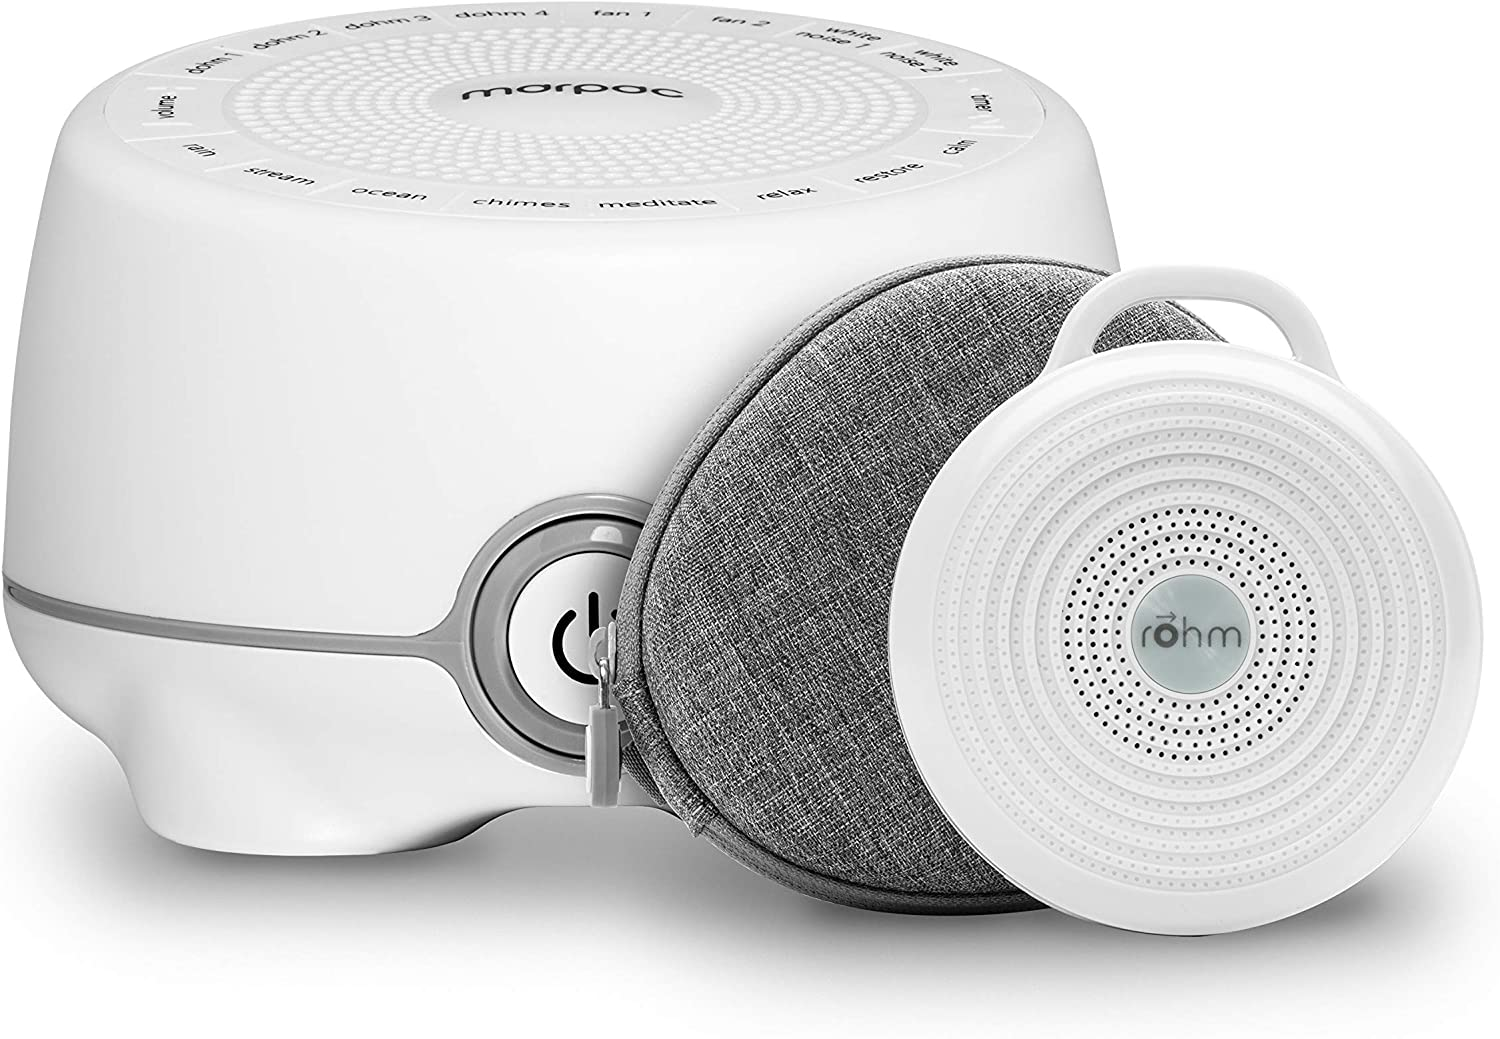 Yogasleep Whish & Rohm Travel Bundle, Portable White Noise Machine, Compact Sleep Therapy for Adults & Baby